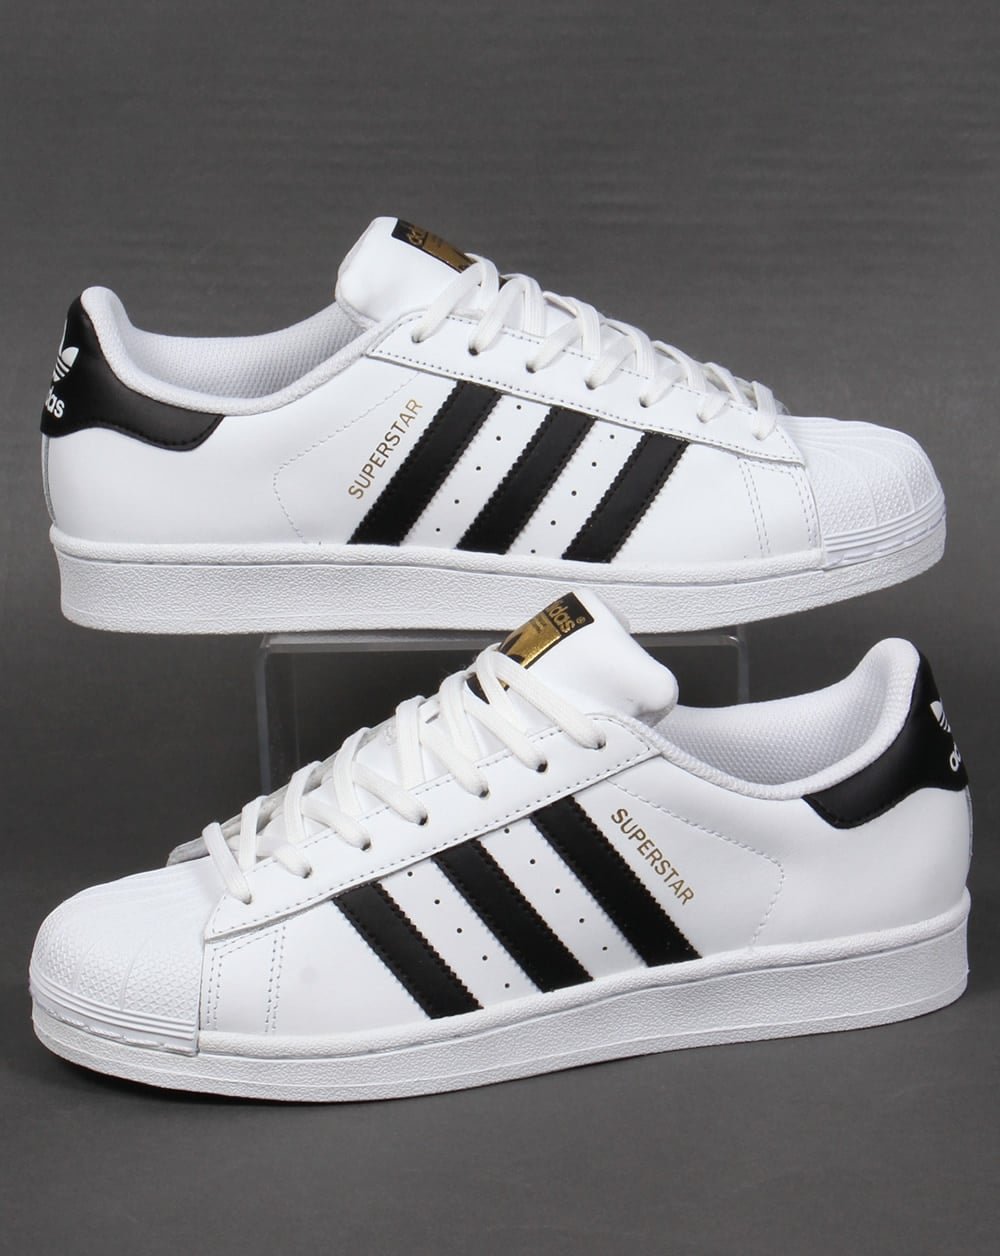 super popular b7092 388a4 adidas Trainers Adidas Superstar Trainers White Black